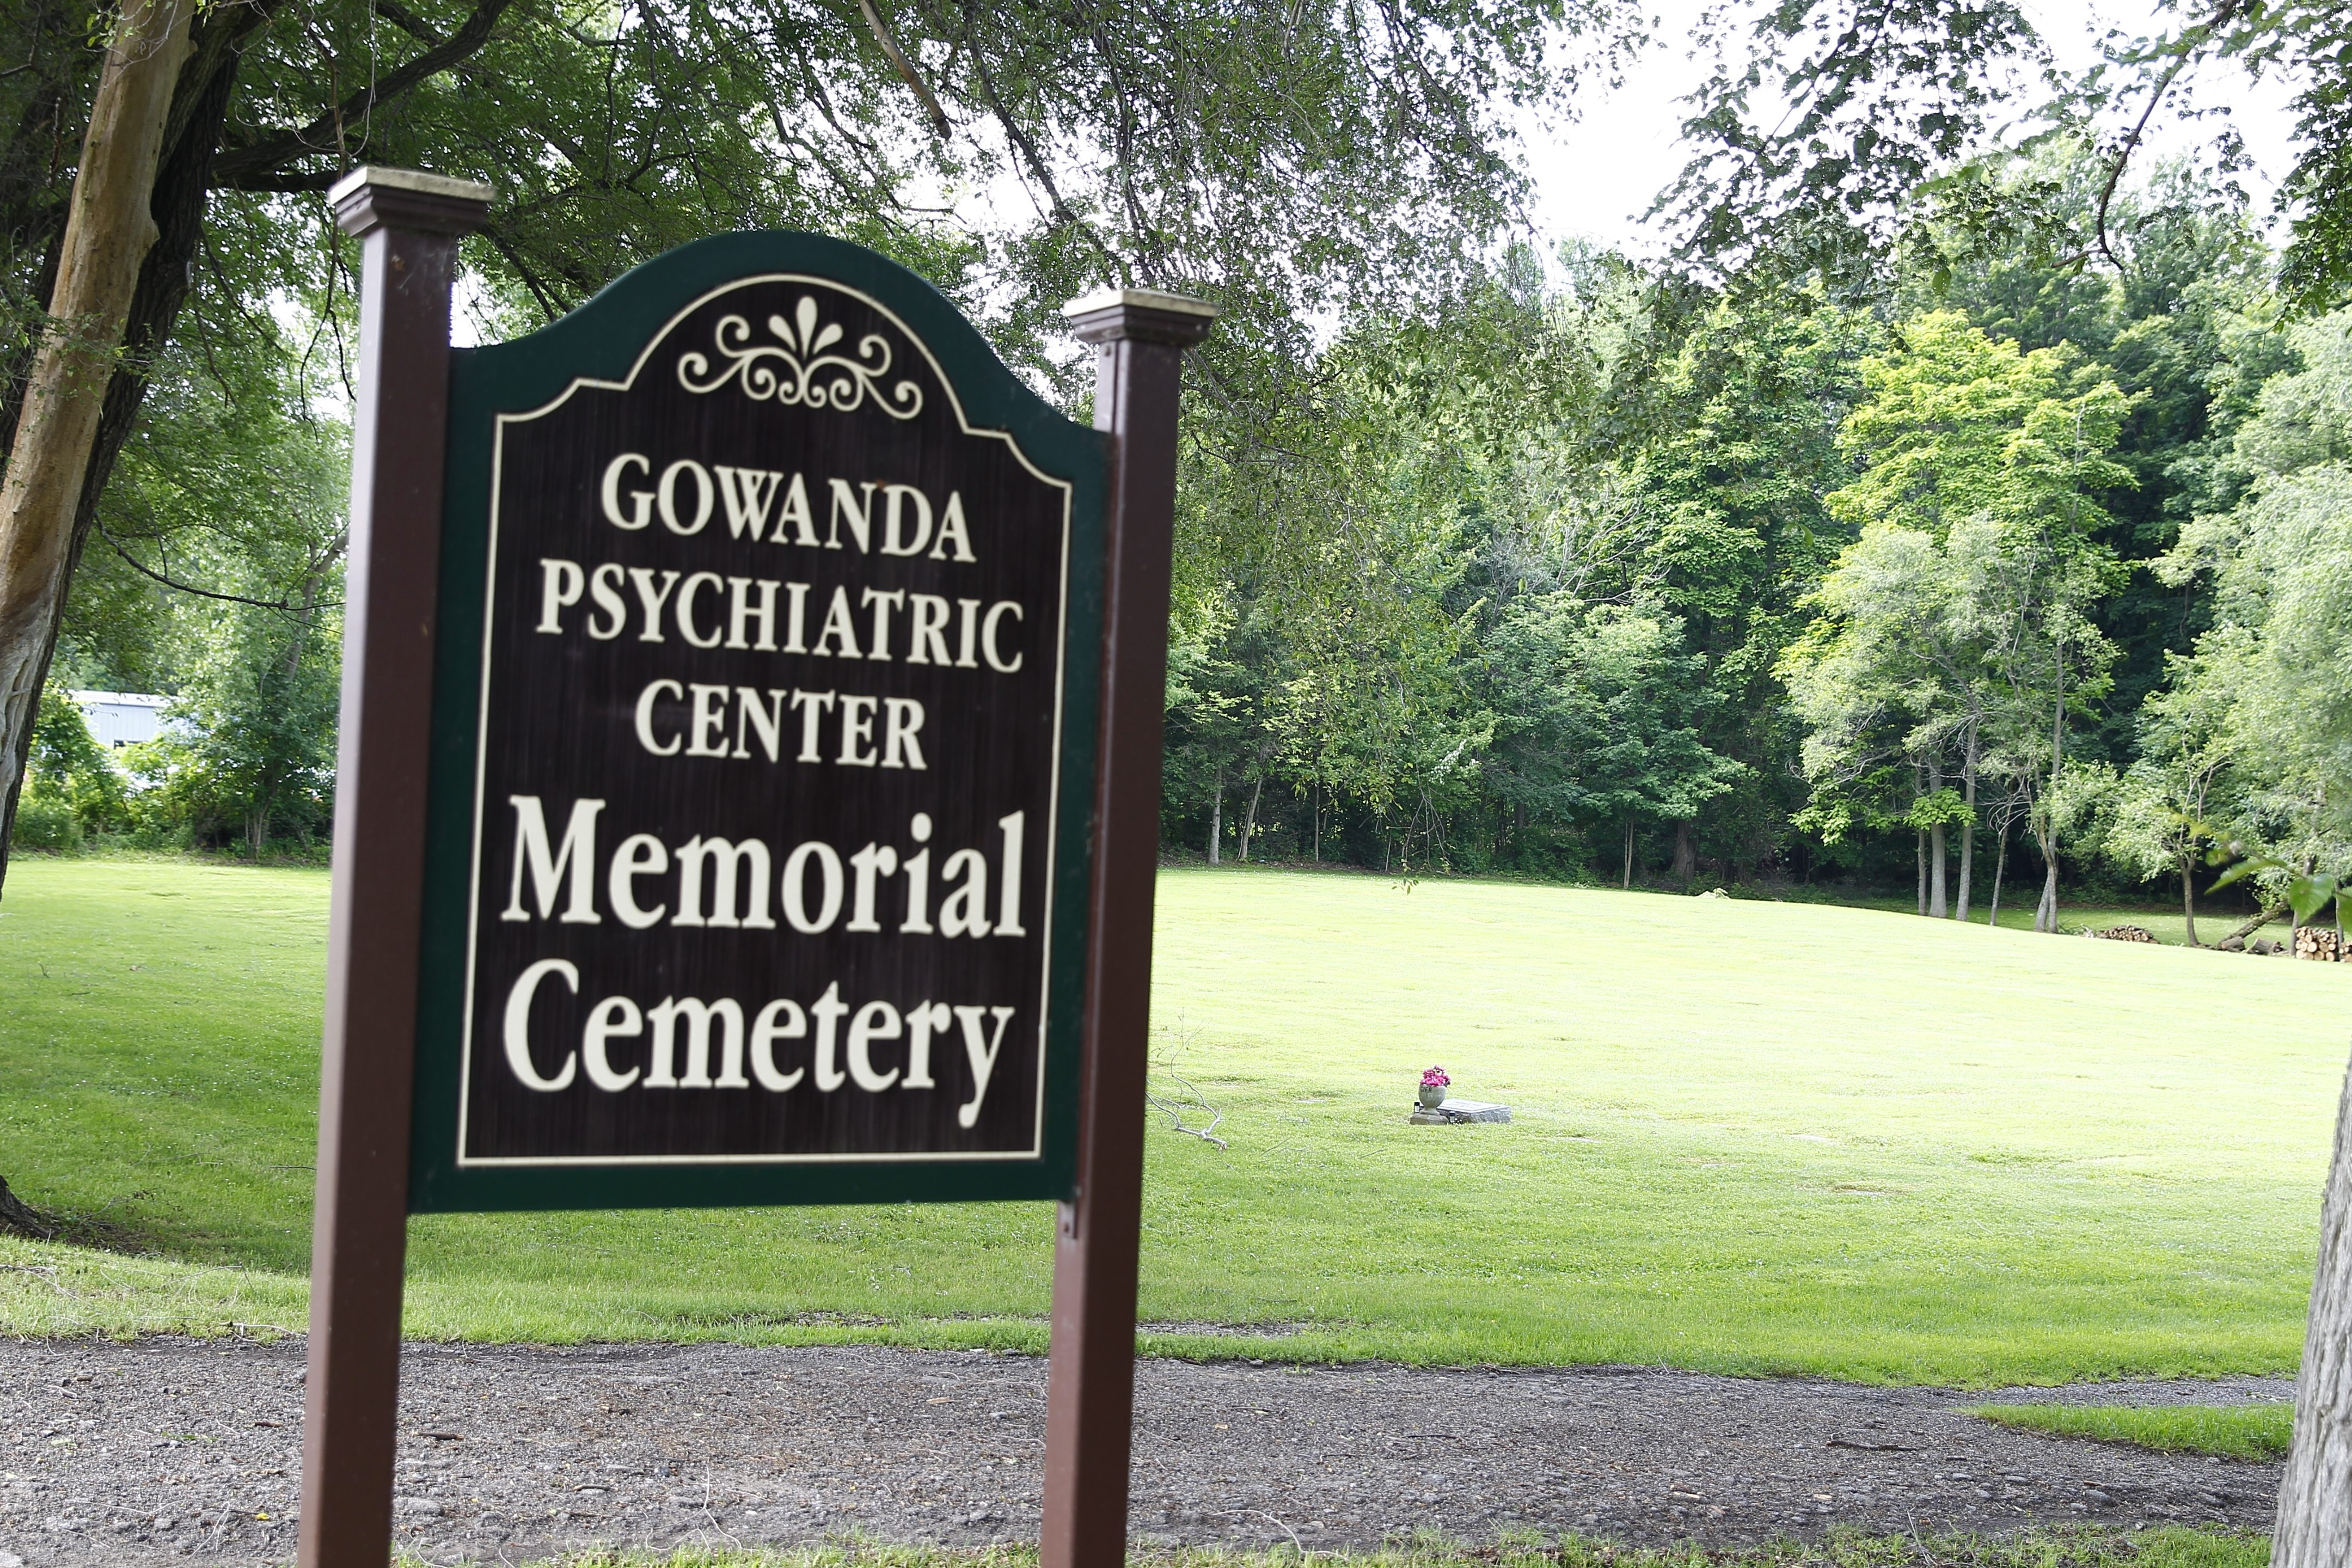 Above, restoration of asylum cemeteries and legislation to make records available to family members are underway for cemeteries like Gowanda Psychiatric Center Memorial Cemetery. Left, Angeline Wnek's resting place.